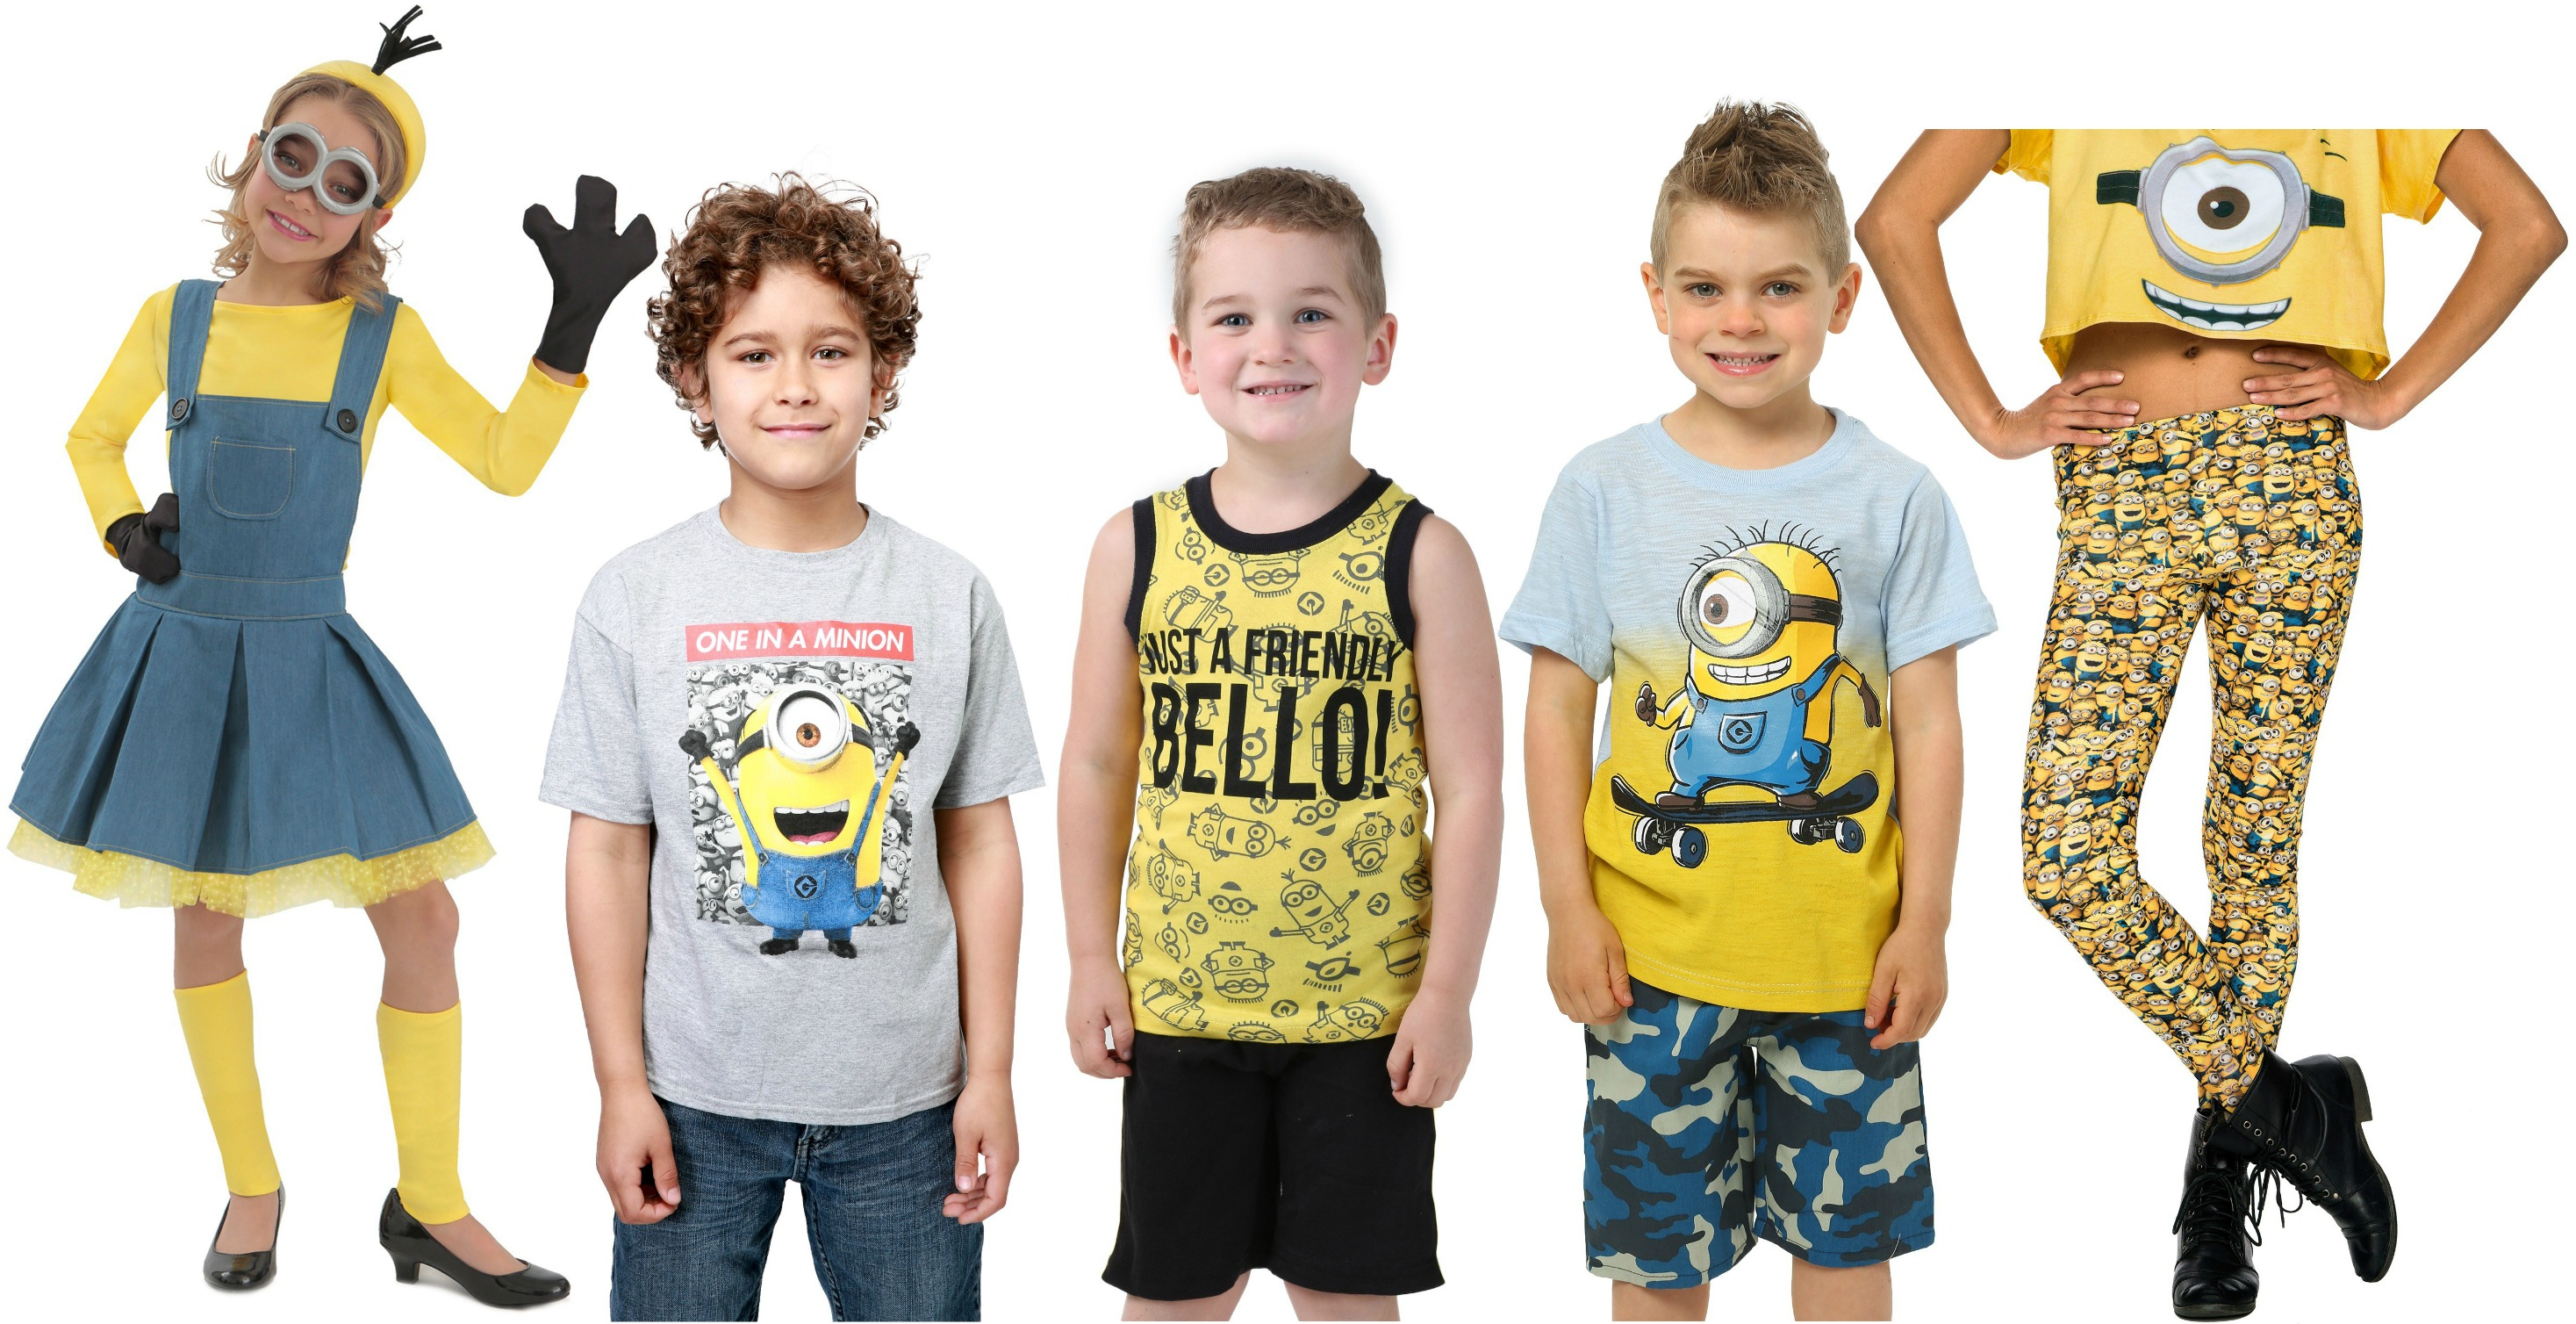 apparel for a minions themed birthday party